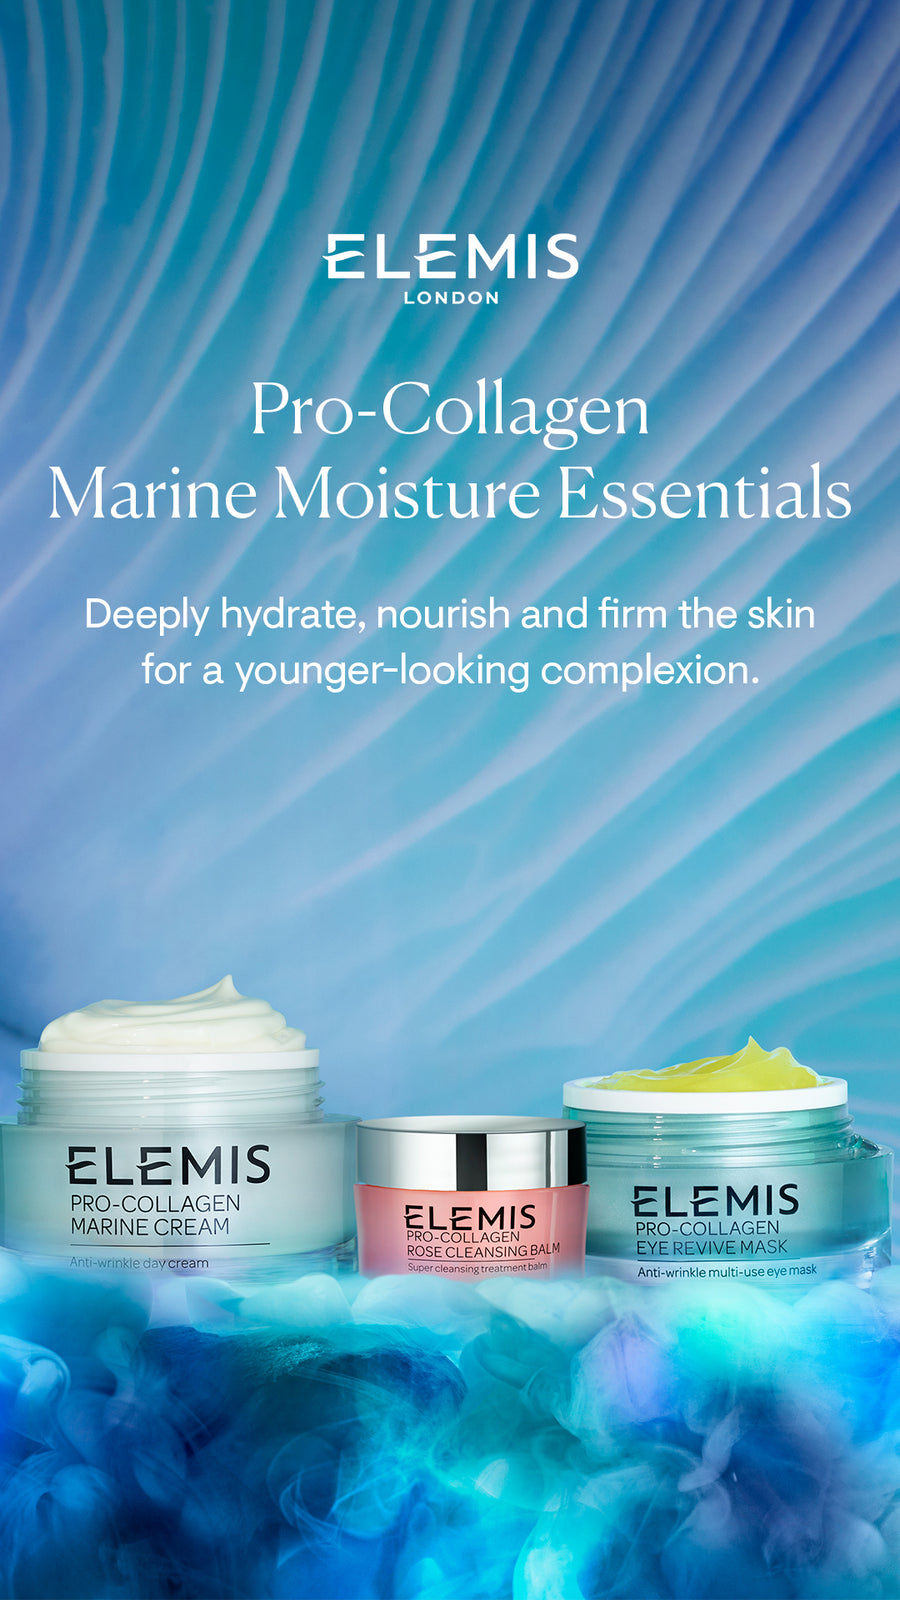 Elemis Pro-Collagen Marine Moisture Essentials Worth £116 Now only £79.